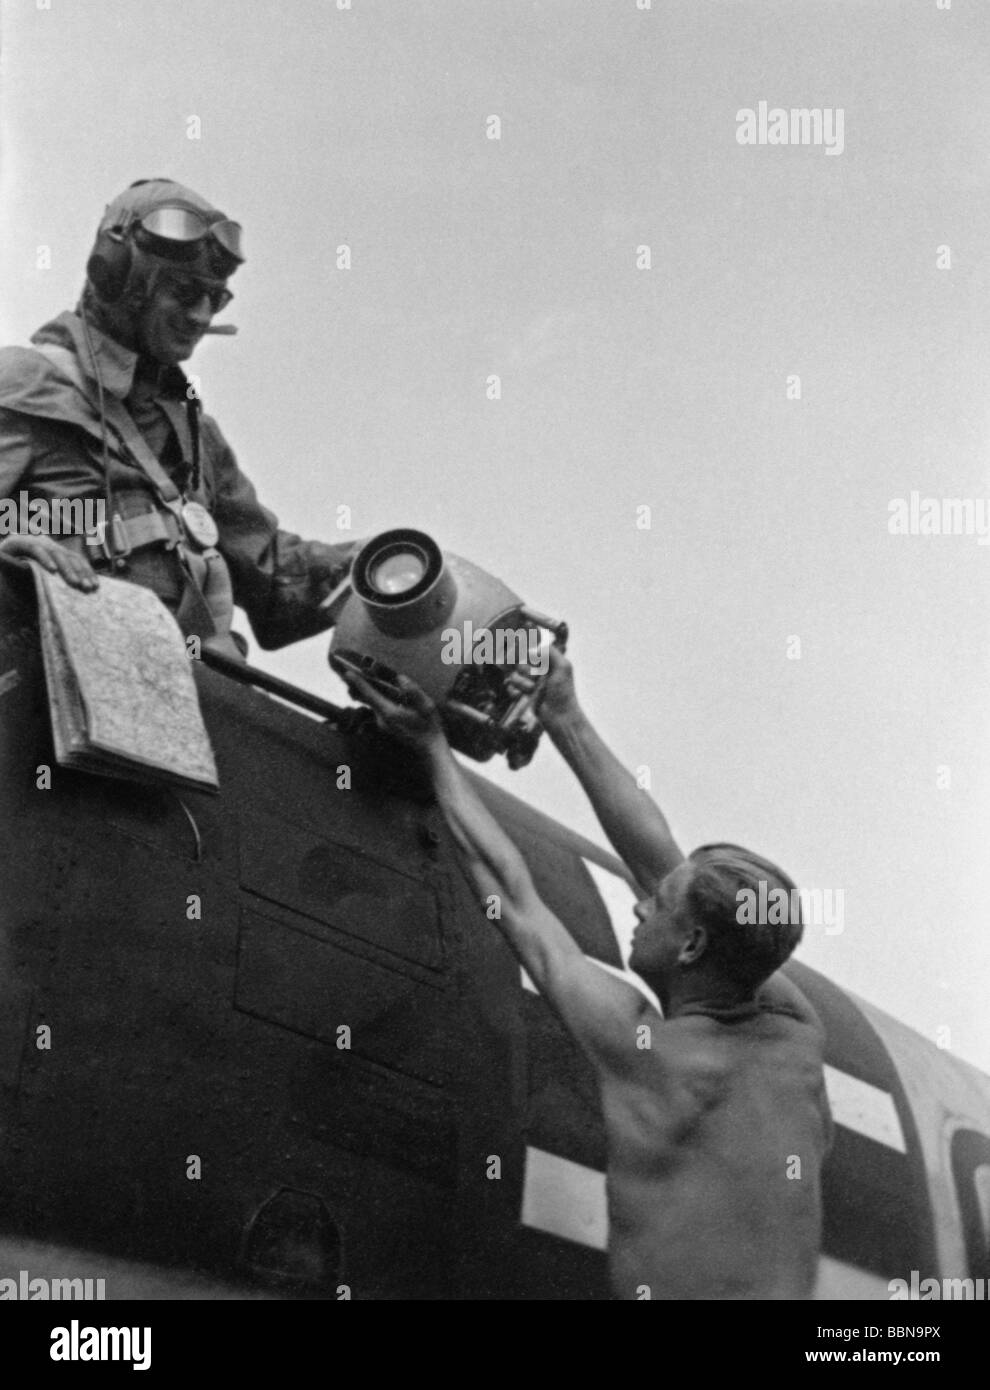 events, Second World War / WWII, Russia, aerial warfare, observer of a German close reconnaissance aircraft Henschel - Stock Image